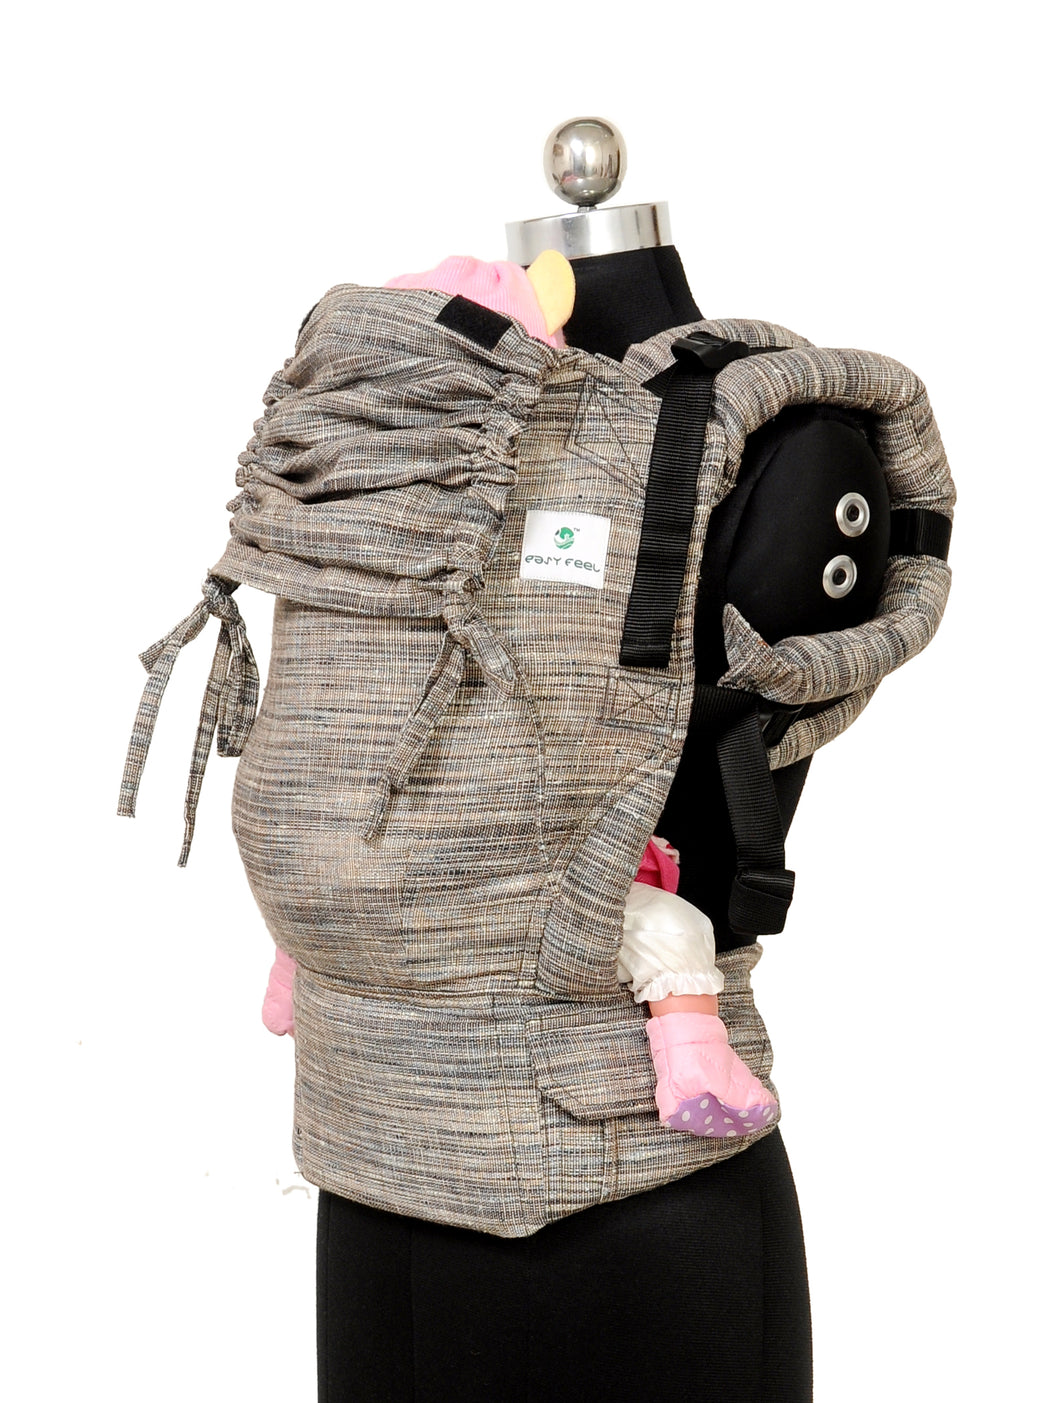 Standard Soft Structured Carrier - Pebble